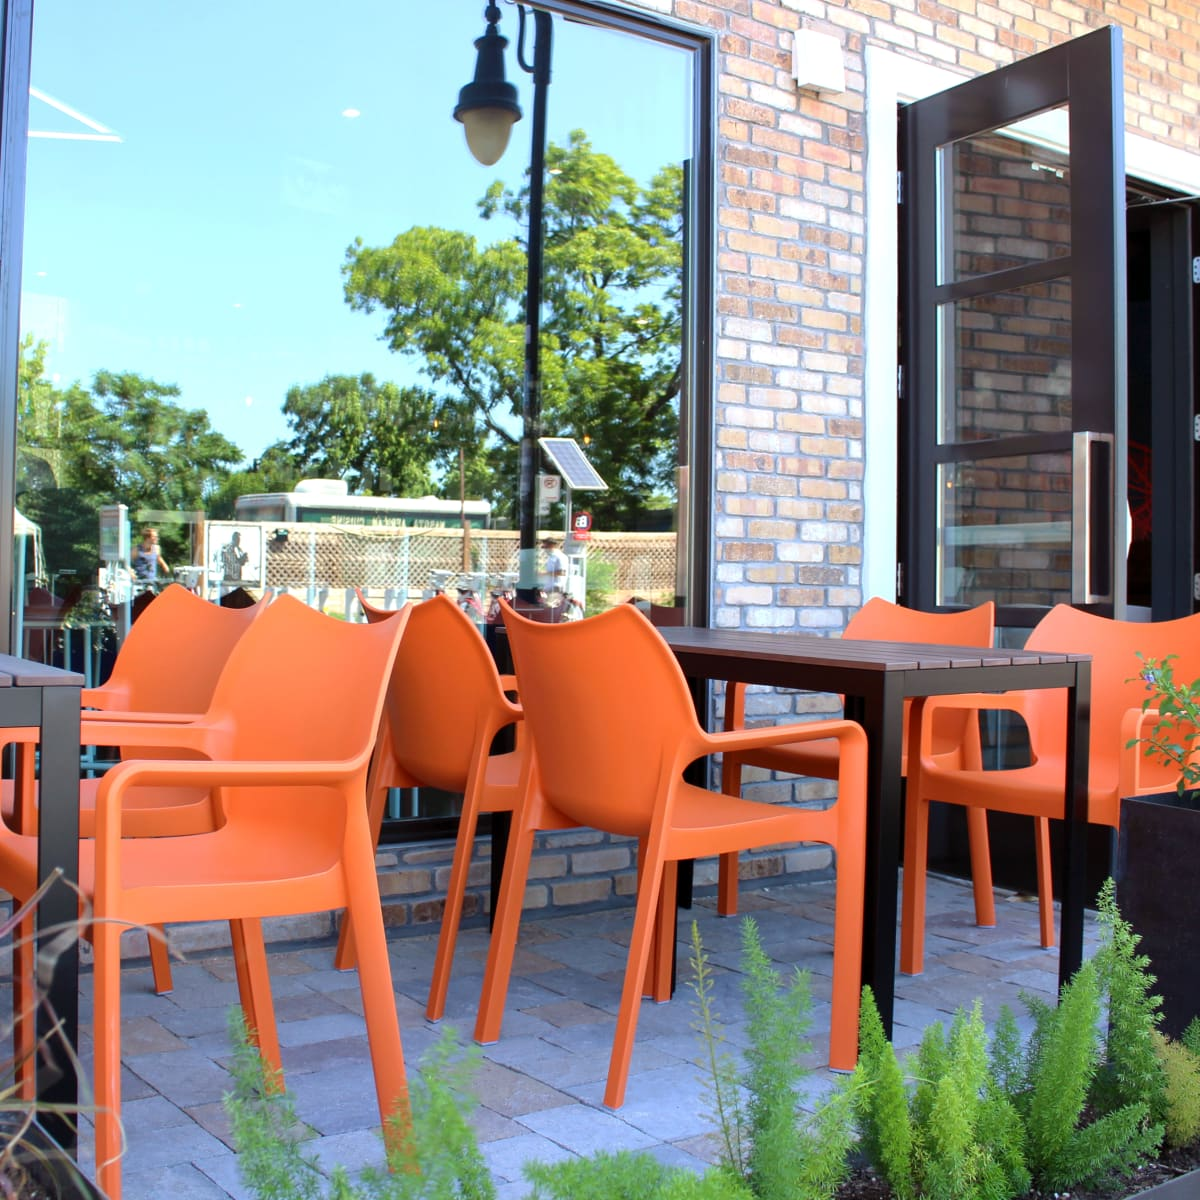 Hotel Eleven 11th Street Austin 2016 front patio cafe